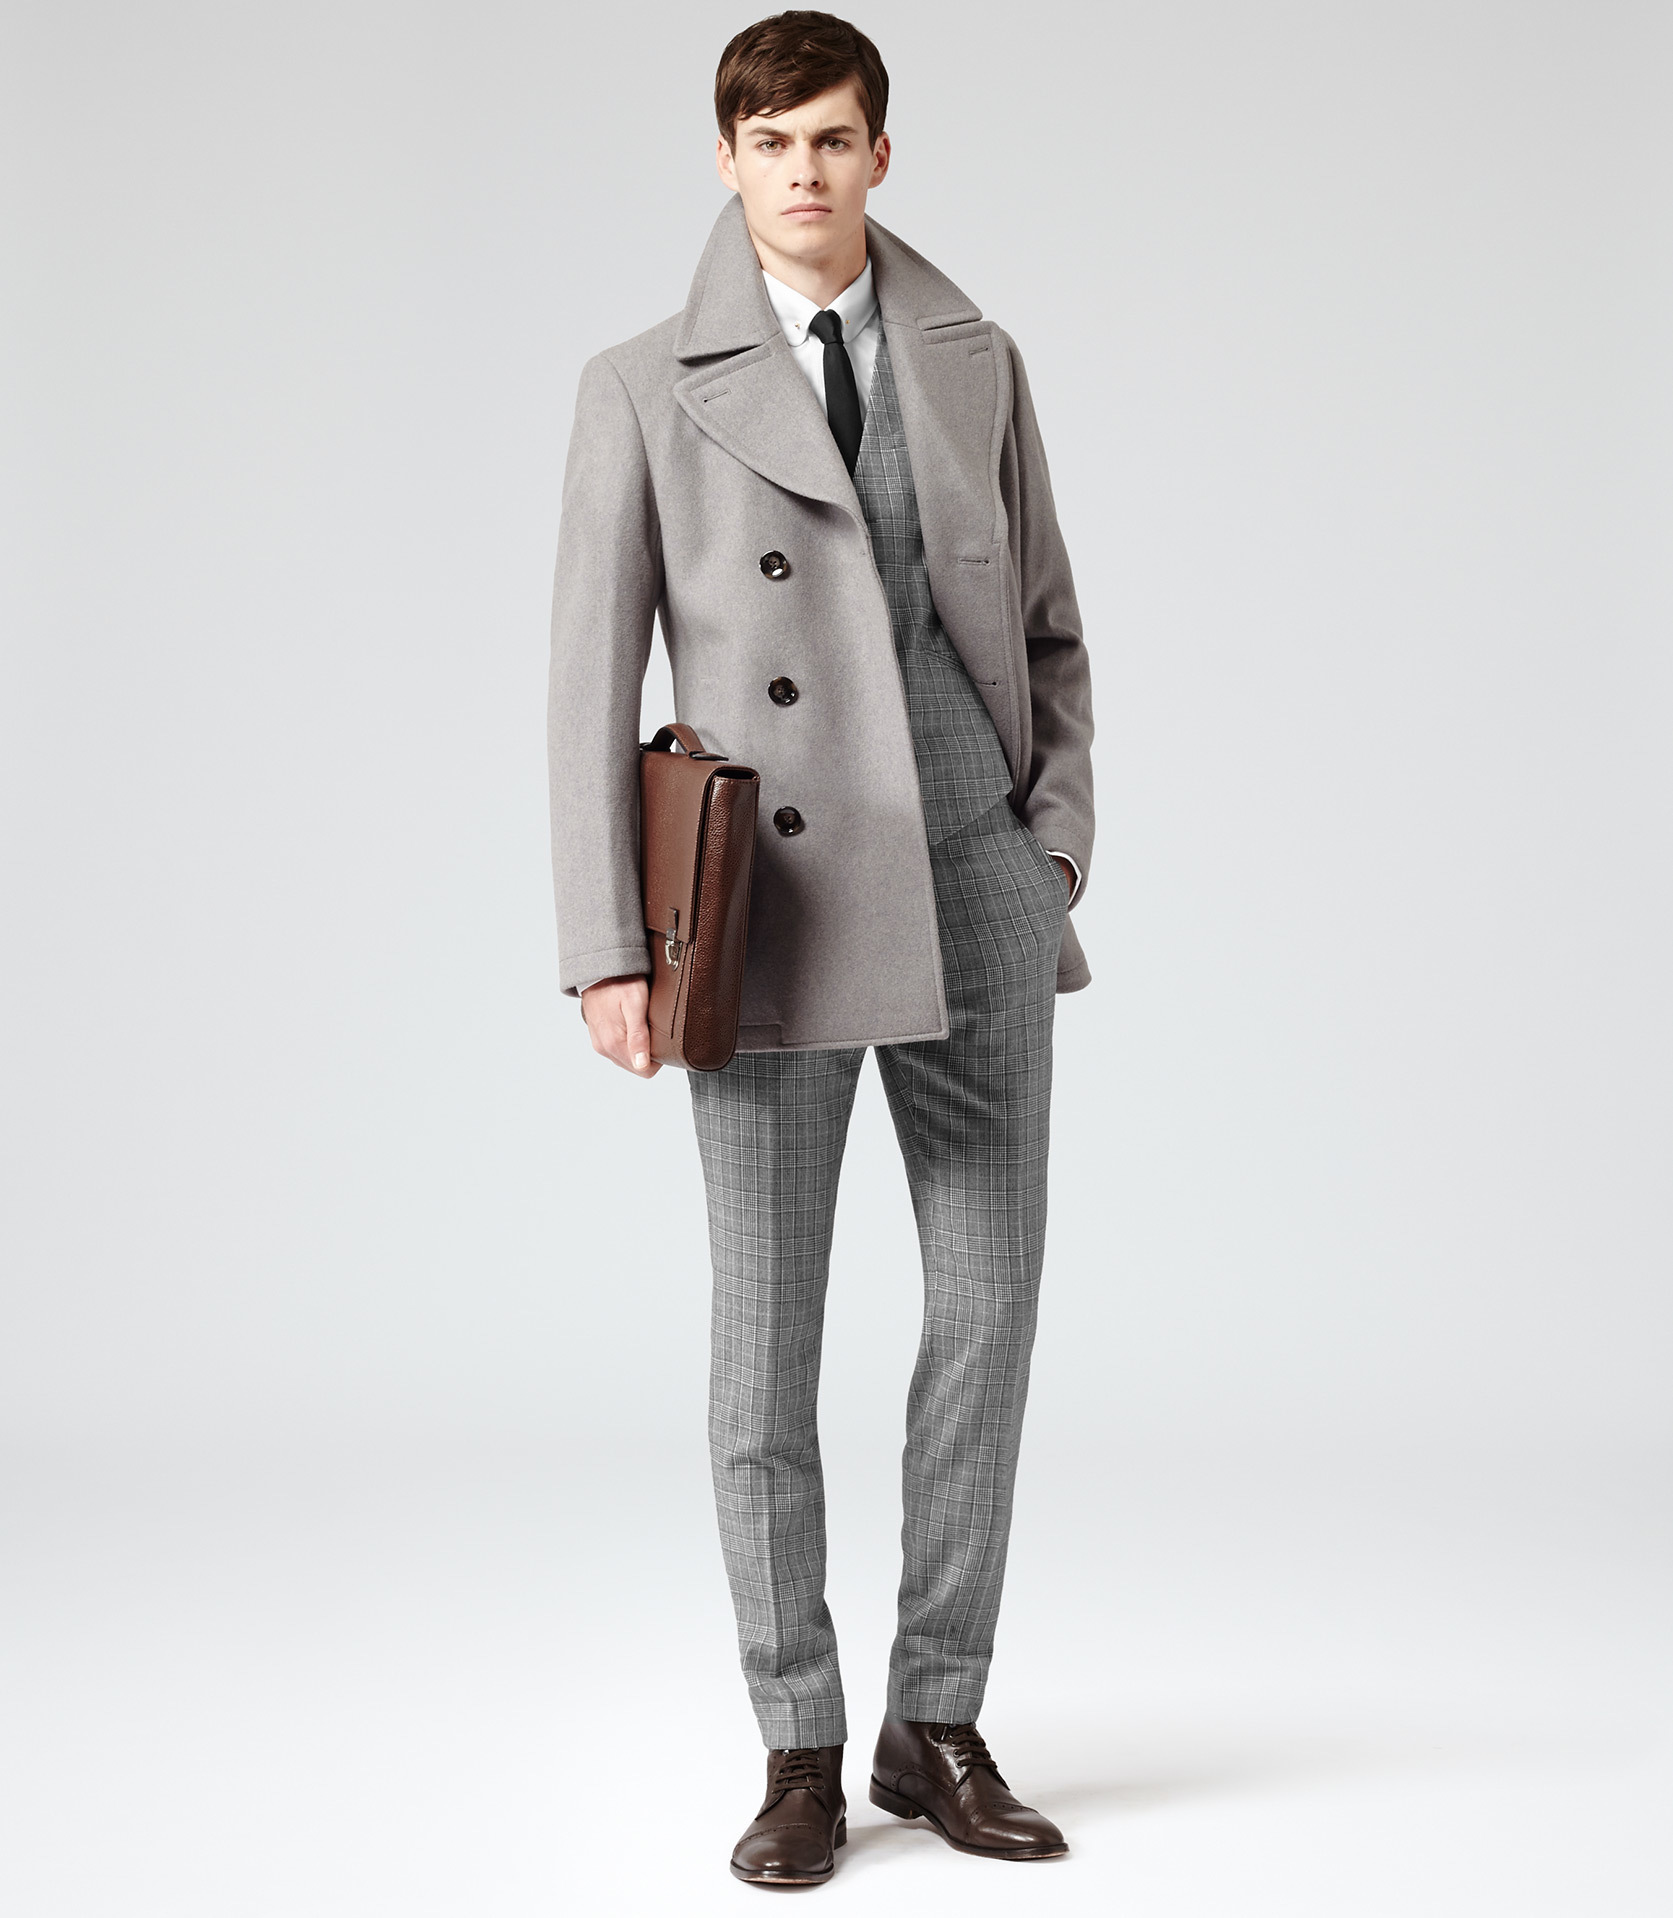 How To Wear A Grey Pea Coat 37 Looks Outfits Men S Fashion